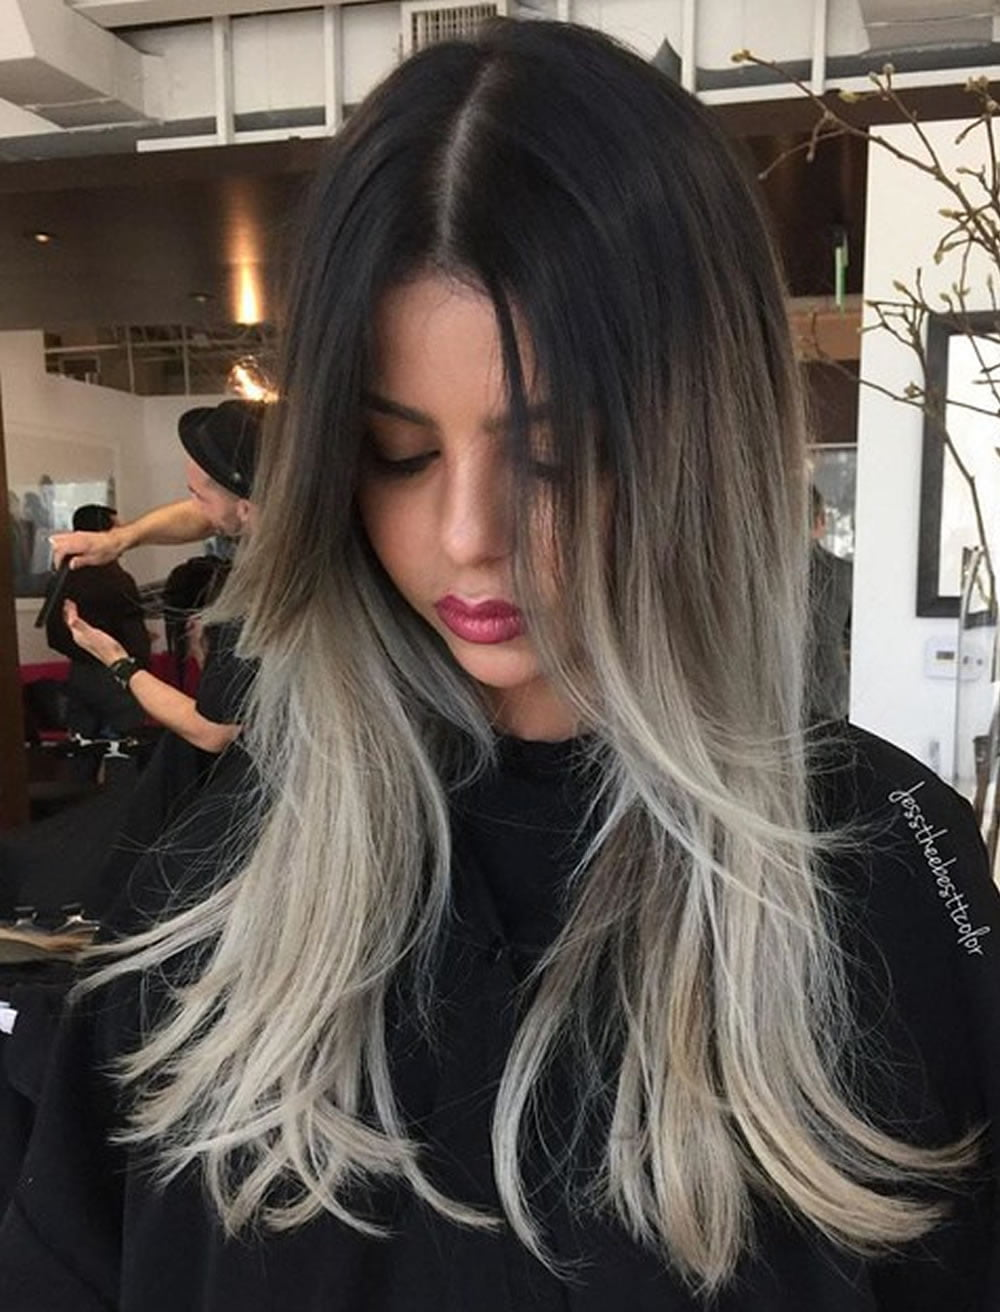 grey hair trend – 20 glamorous hairstyles for women 2018 – page 2